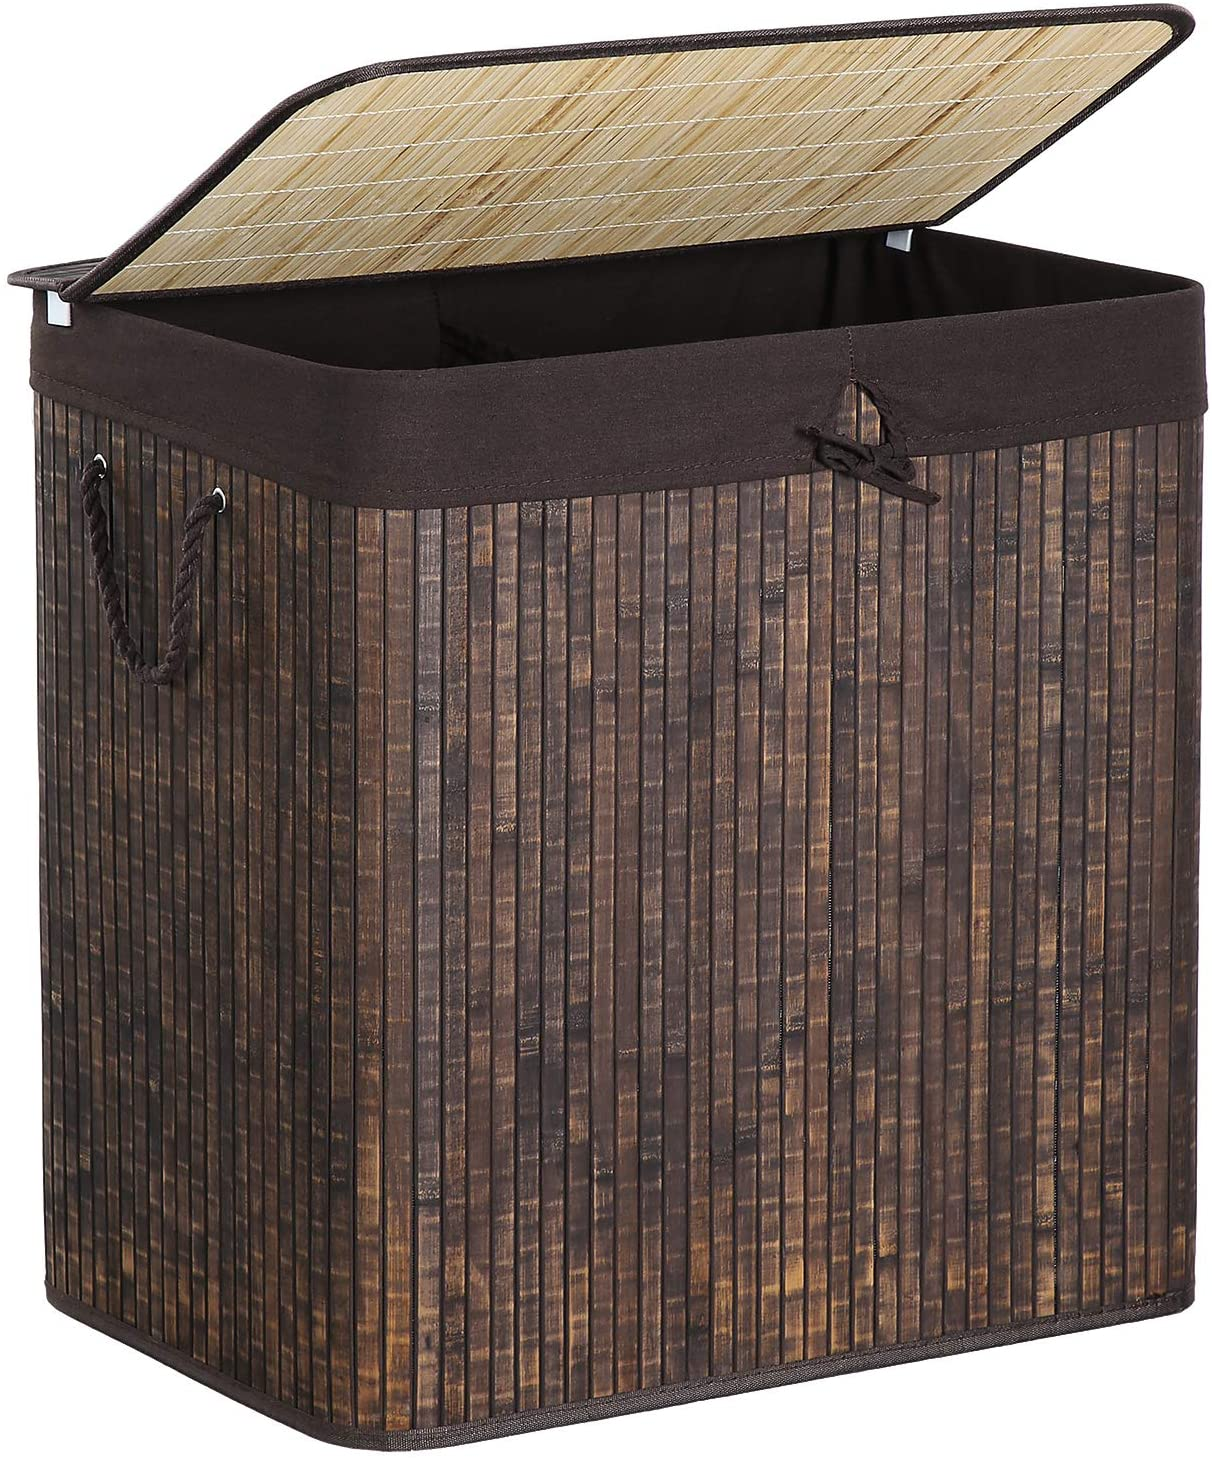 SONGMICS Divided Laundry Hamper, Two-Section Bamboo Laundry Basket Sorter with Removable Liner and Handles, 40 Gal (151L), Rustic Brown ULCB65WN